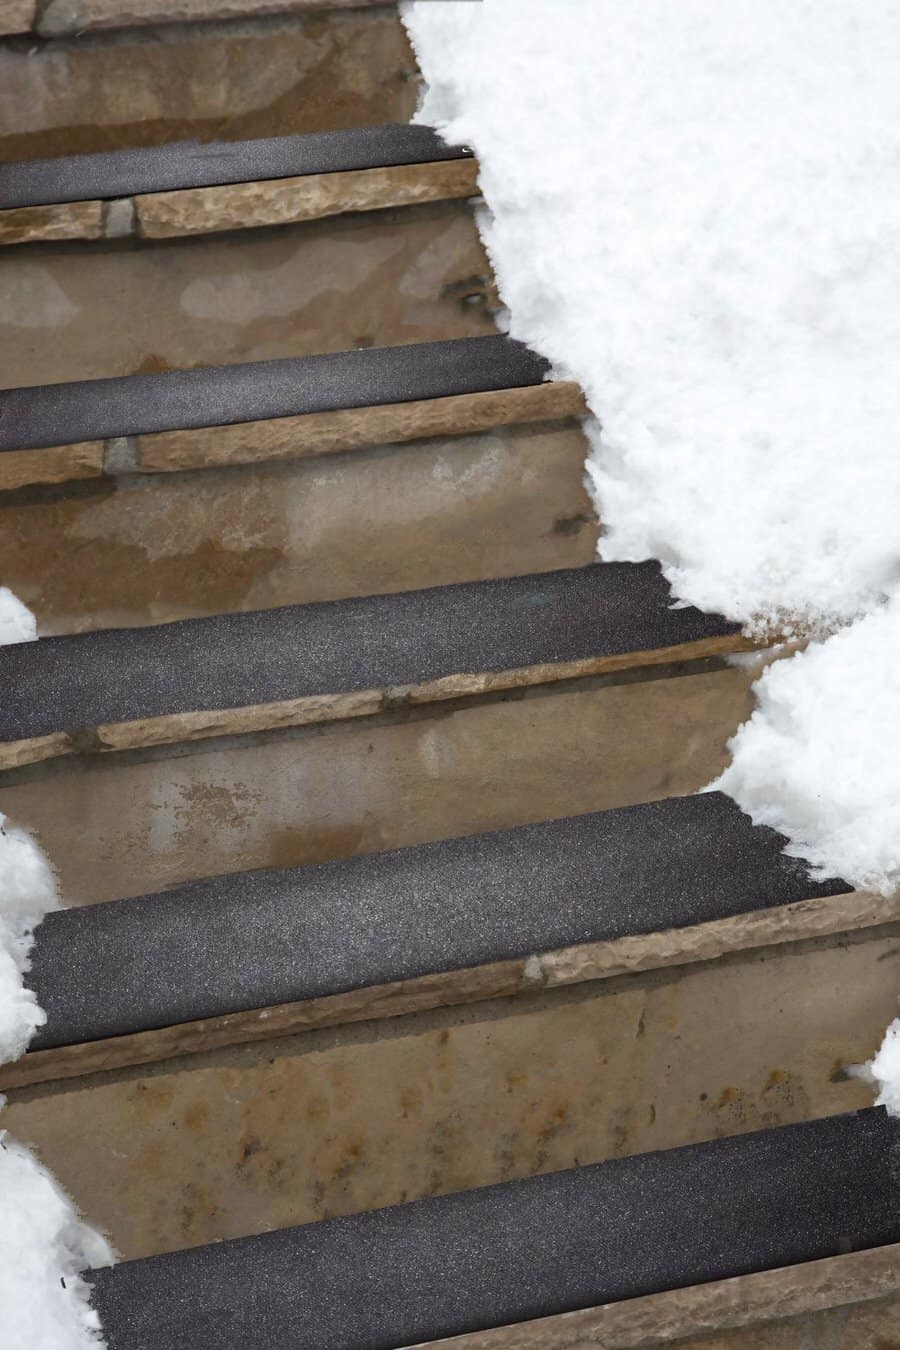 HeatTrak Residential Snow-Melting Stair Mat Be Safe this Winter